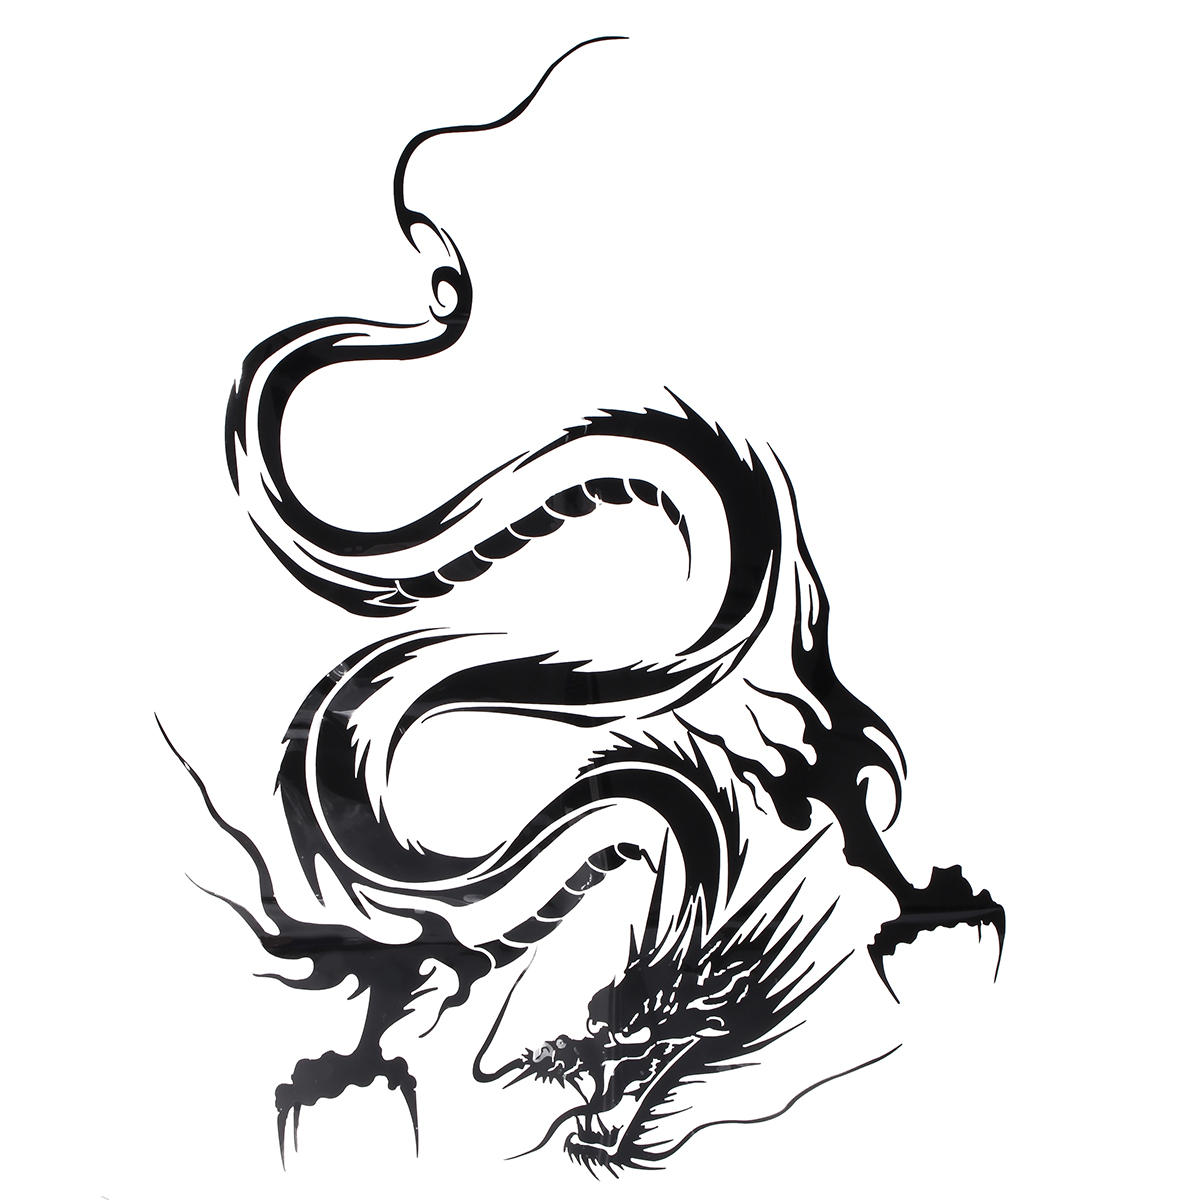 Reflective Dragon Totem Scratching Decals Car Stickers Full Body Car Head Styling Sticker black